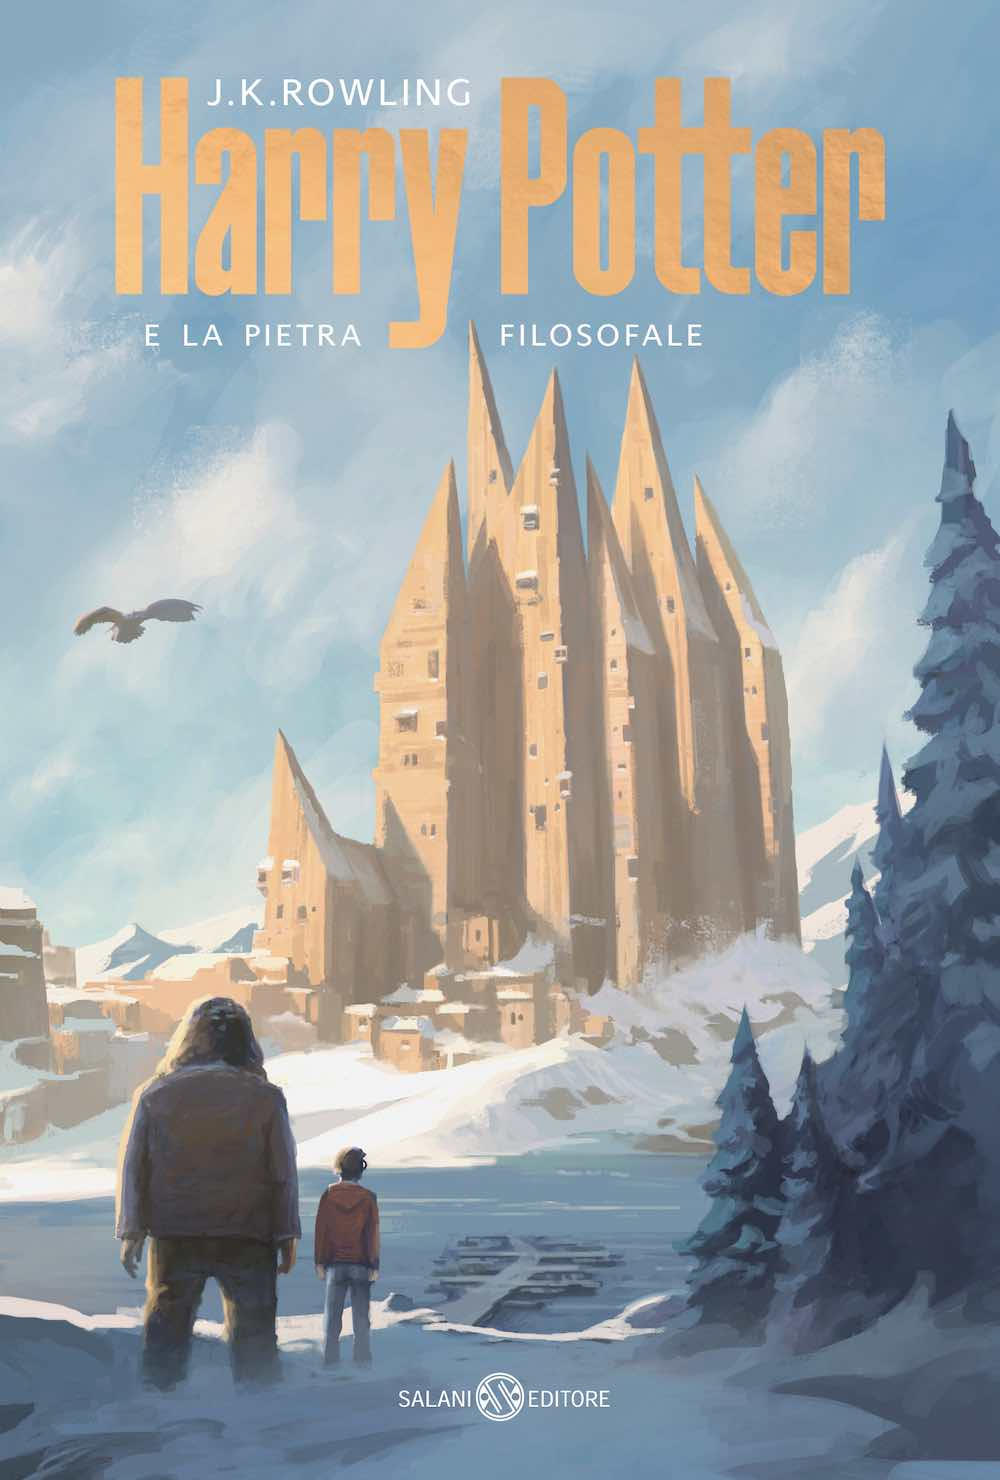 Harry Potter book cover by AMDL Circle for Salani Editore.